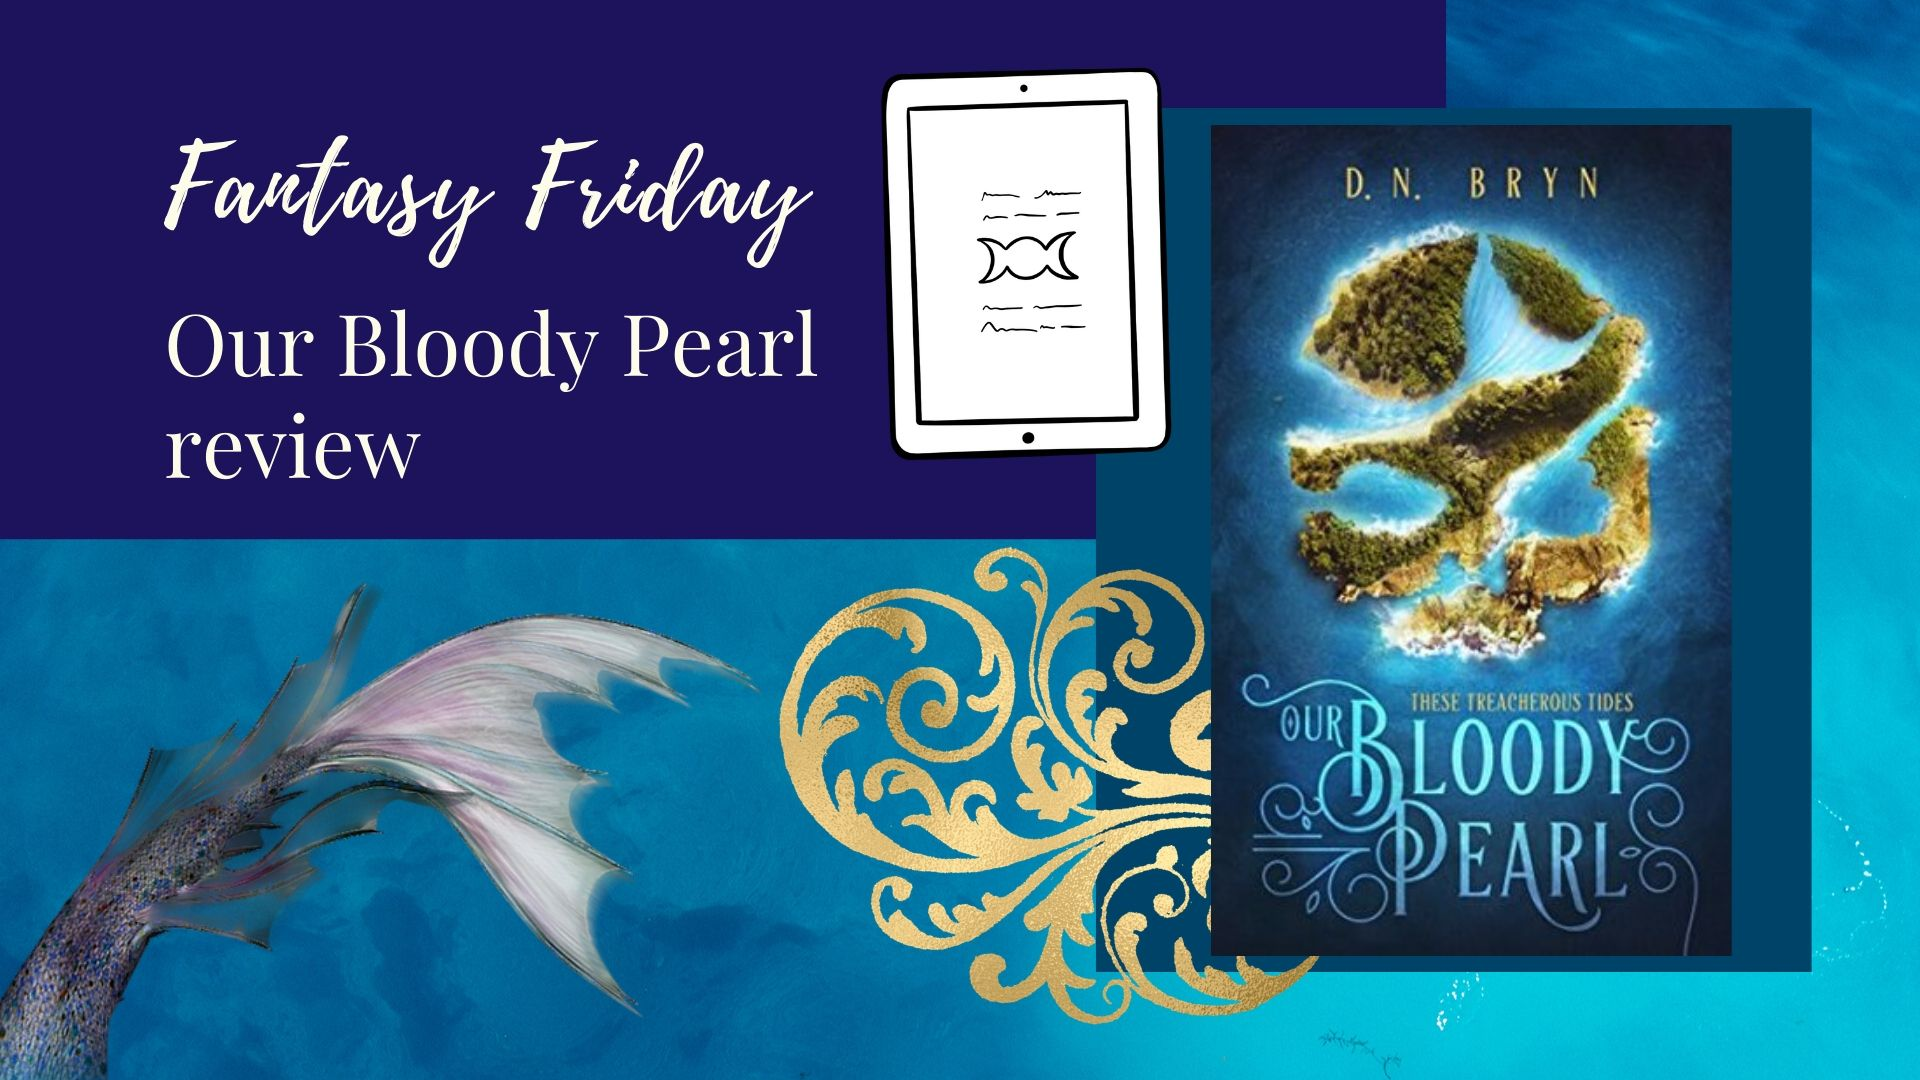 Fantasy Friday: Our Bloody Pearl by D. N. Bryn